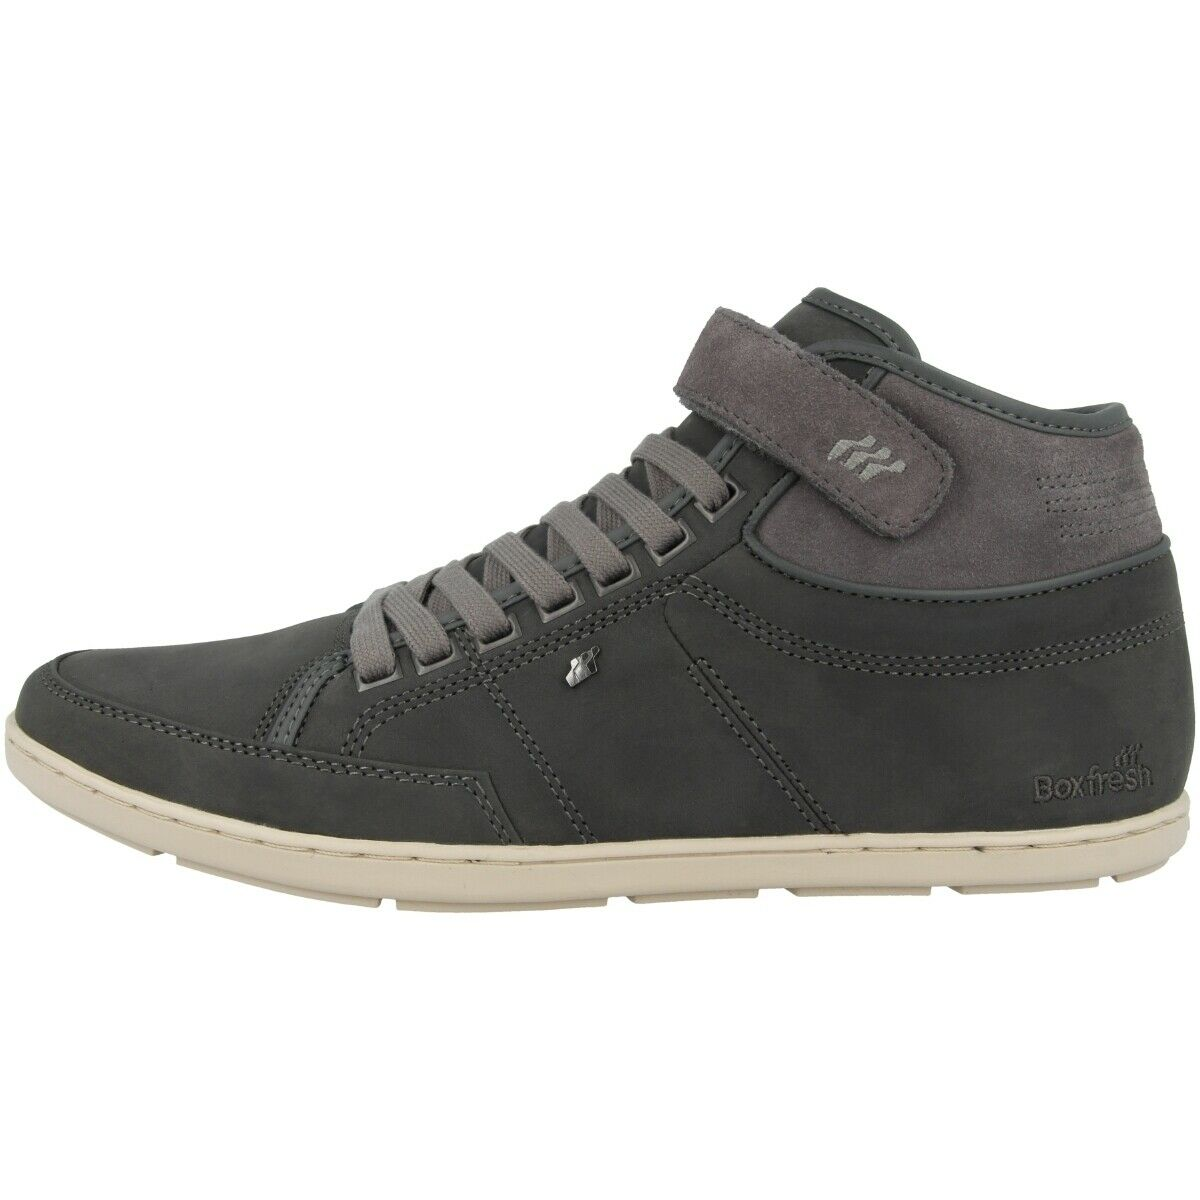 Boxfresh Swich Blok SH Leather shoes Mens Mid Cut Trainer Charcoal E15388